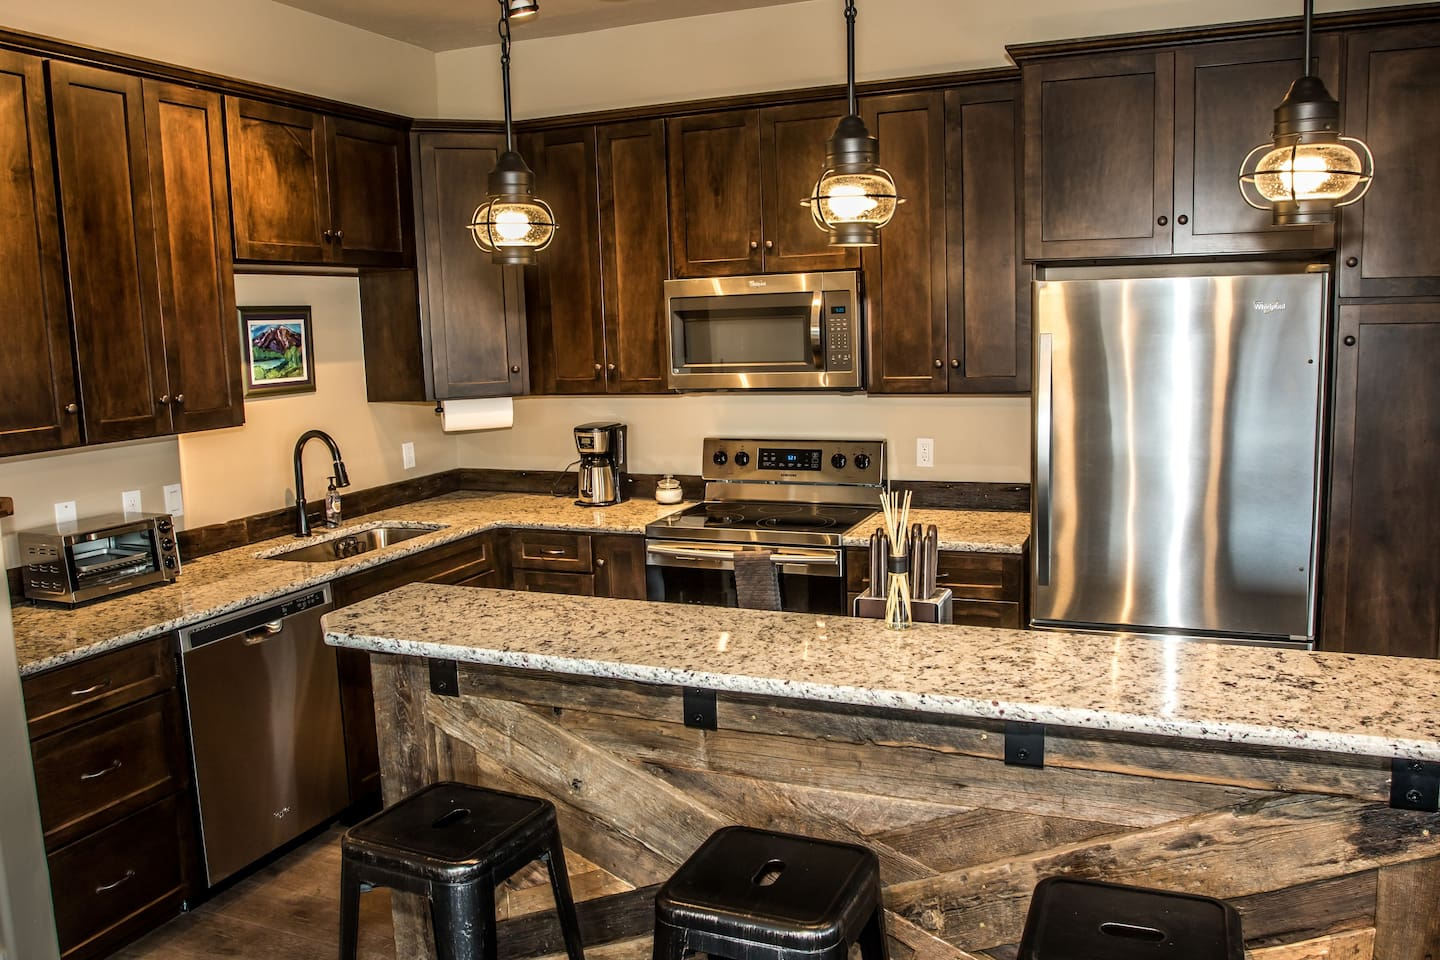 """Granite counter tops, historic barn wood finishes and high end appliances.  """"The pictures don't do this place justice! Way better than I could've imagined!!!""""***** Paige- September 2017"""